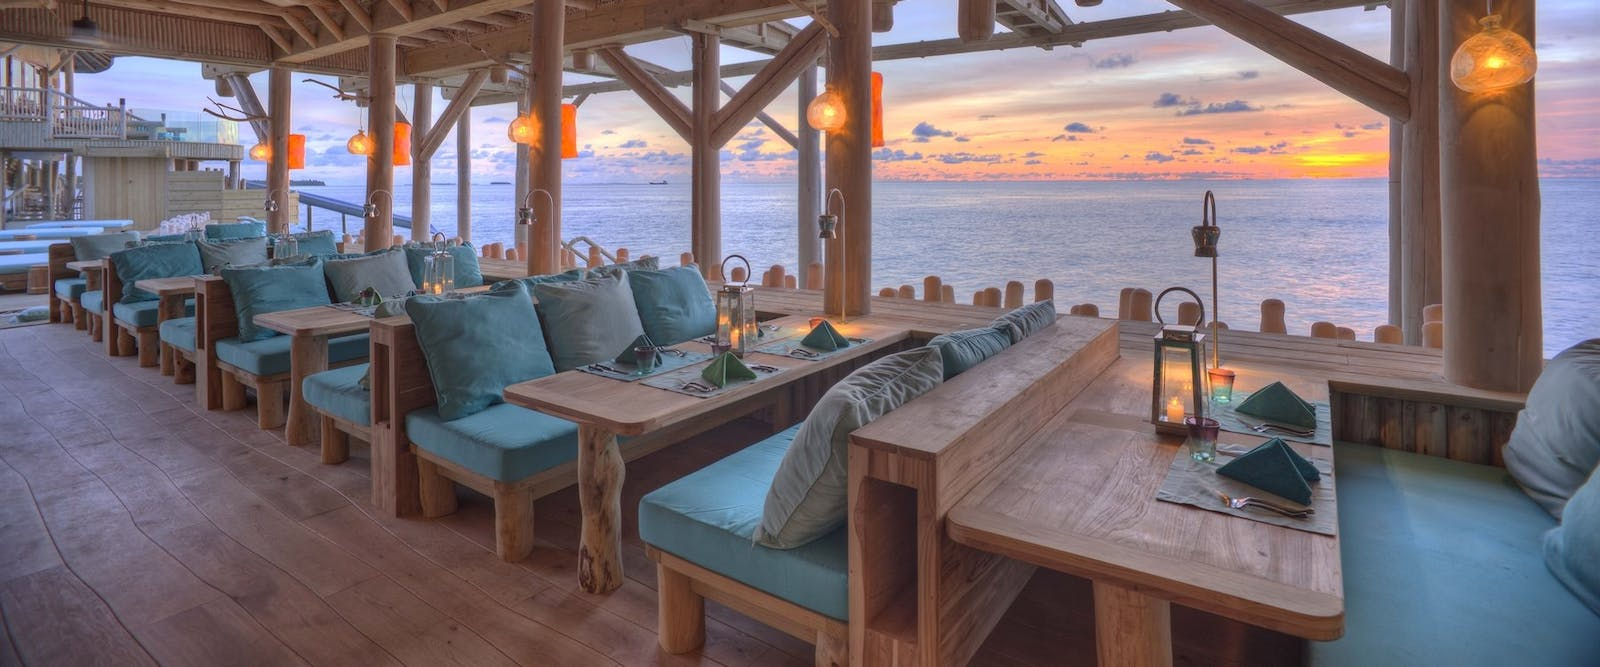 Out of the Blue Restaurant at Soneva Fushi, Maldives, Indian Ocean